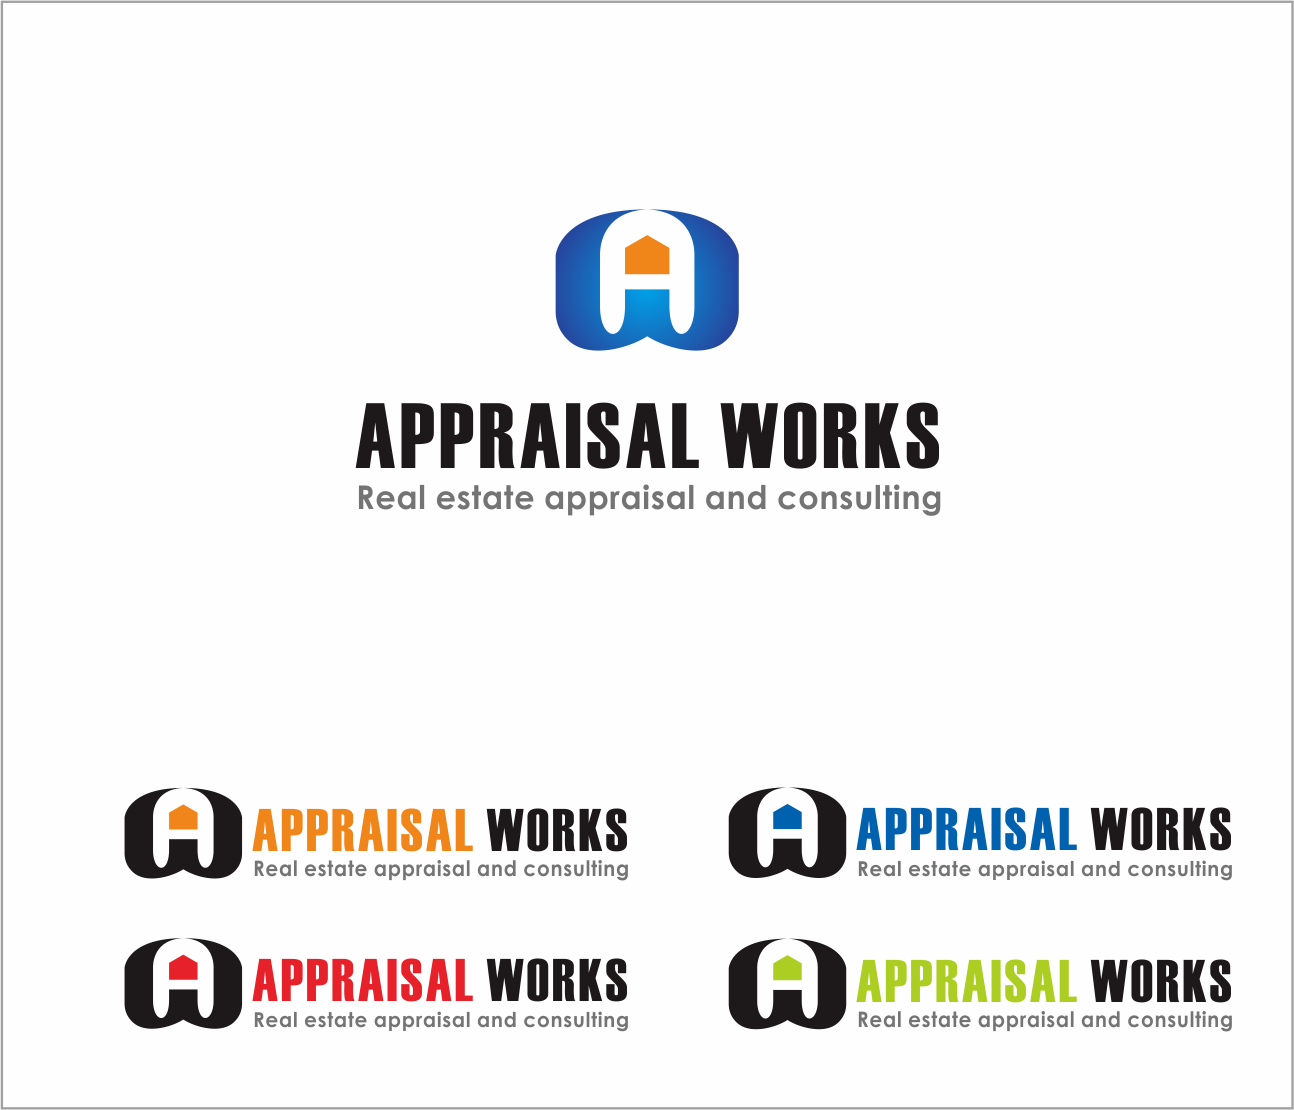 Logo Design by Armada Jamaluddin - Entry No. 188 in the Logo Design Contest Appraisal Works Logo Design.